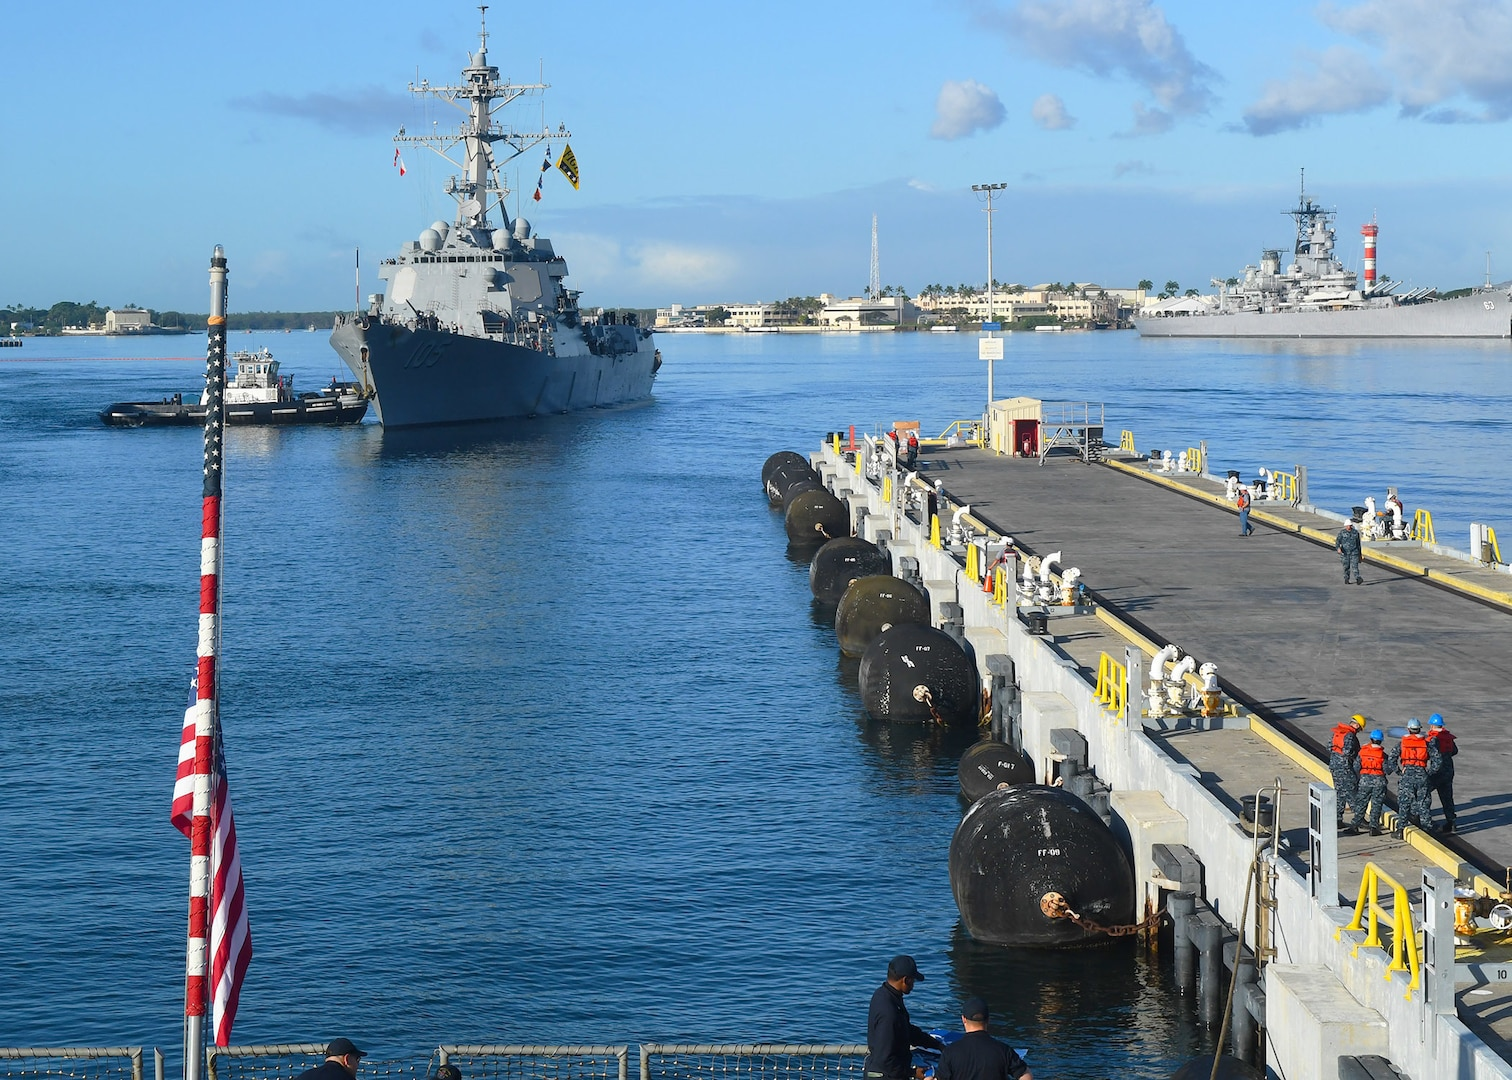 The Arleigh Burke-class guided-missile destroyers USS Sterett (DDG 104) and USS Dewey arrive in Pearl Harbor for a port visit. Sterett and Dewey are on a scheduled deployment to conduct operations in the Indo-Pacific region. They will also support the Wasp Expeditionary Strike Group (ESG) in order to advance U.S. Pacific Fleet's Up-Gunned ESG concept and will train with forward-deployed amphibious ships across all mission areas.